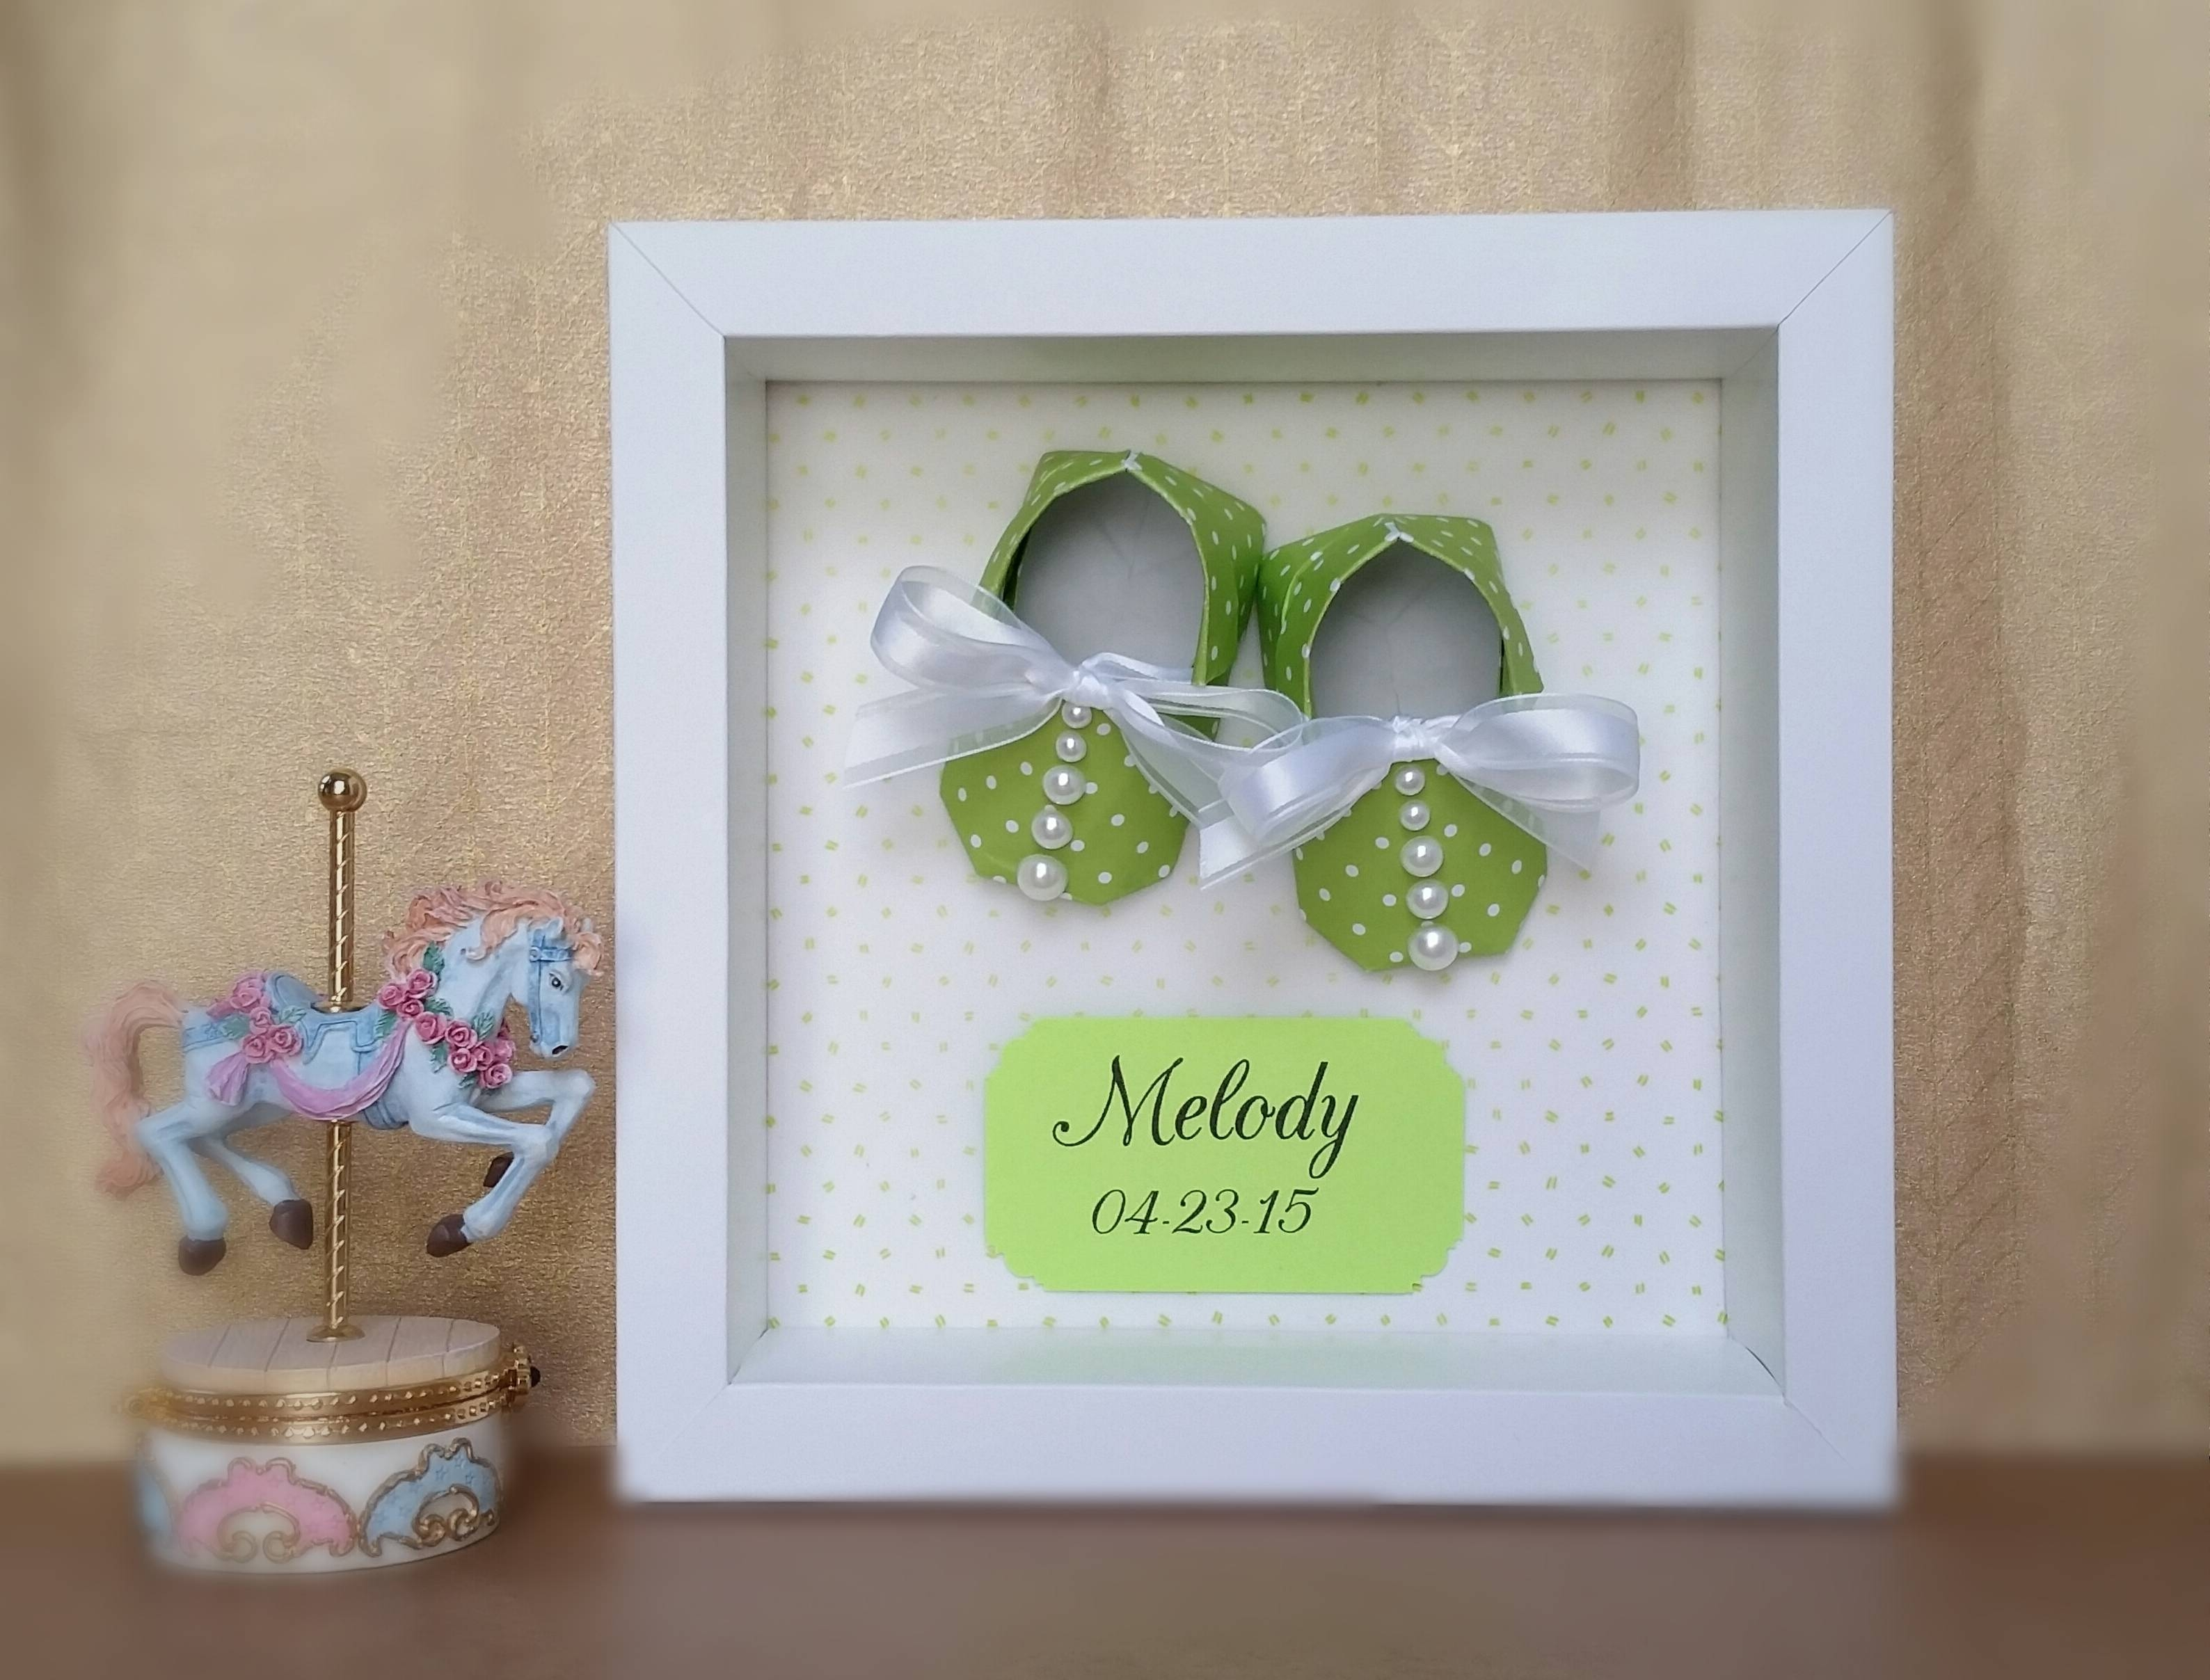 Nursery Decor, Origami Baby Shoes Booties Framed 3D Wall Art For Most Recent Framed 3D Wall Art (View 17 of 20)